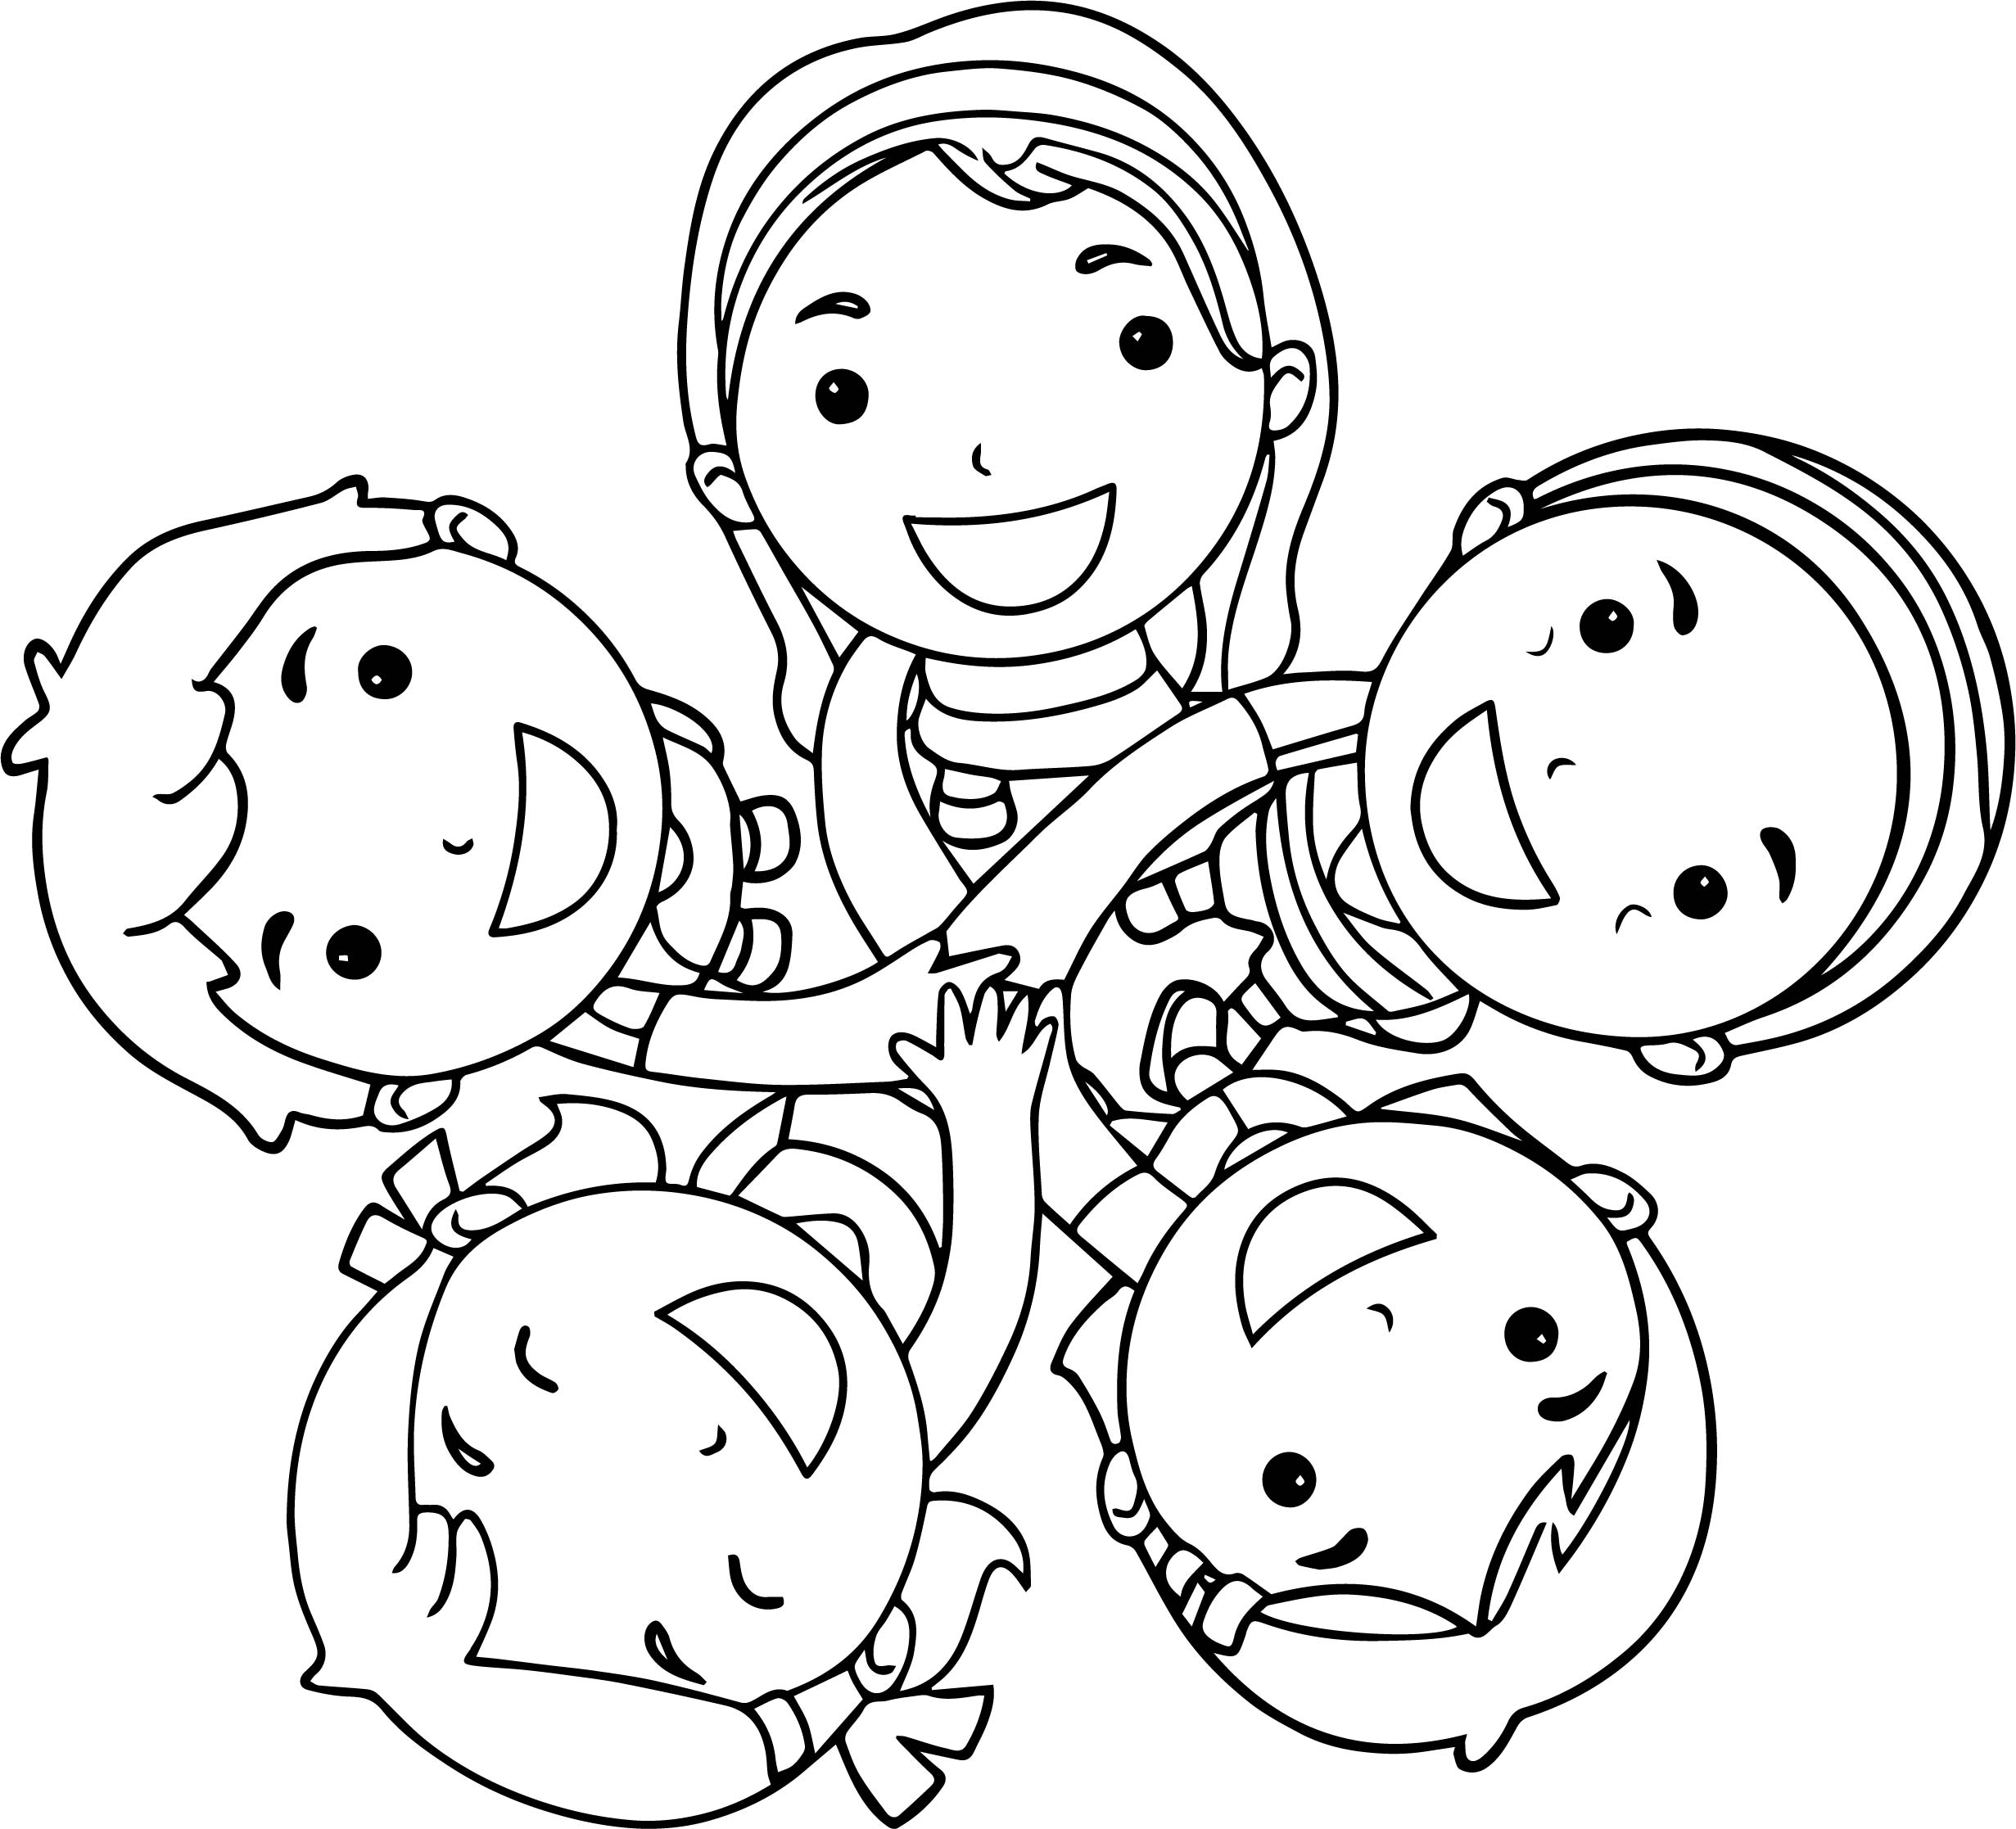 Cover Kids Activity Coloring Page